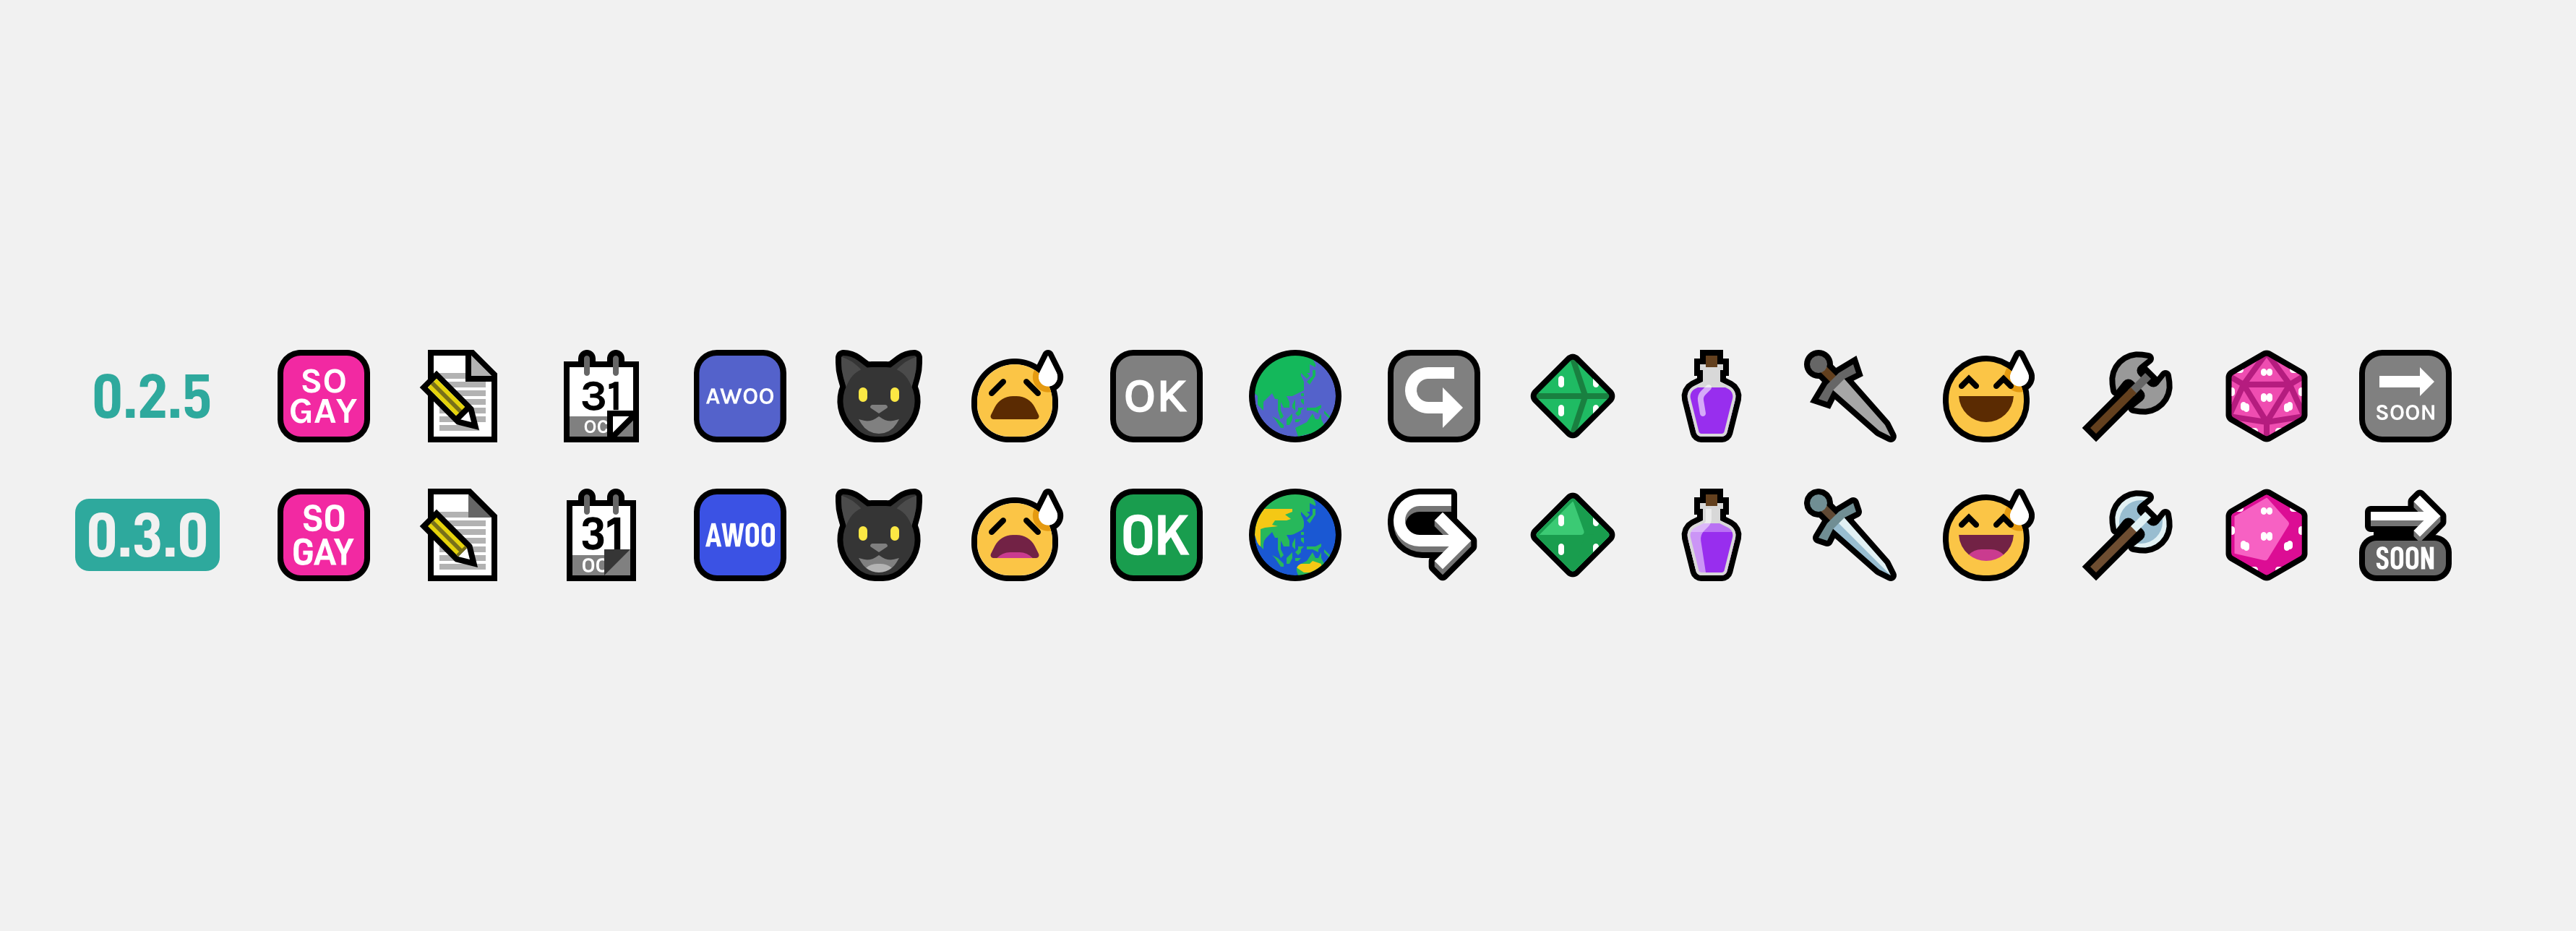 Two rows of emoji set against a very light gray background. The top row is from 0.2.5 and the bottom is from 0.3.0. 0.3.0 emoji are brighter, more detailed and have more lighting indicating depth. The differences also demonstrate the new font for latin symbols, which is bolder and clearer than the previous one.